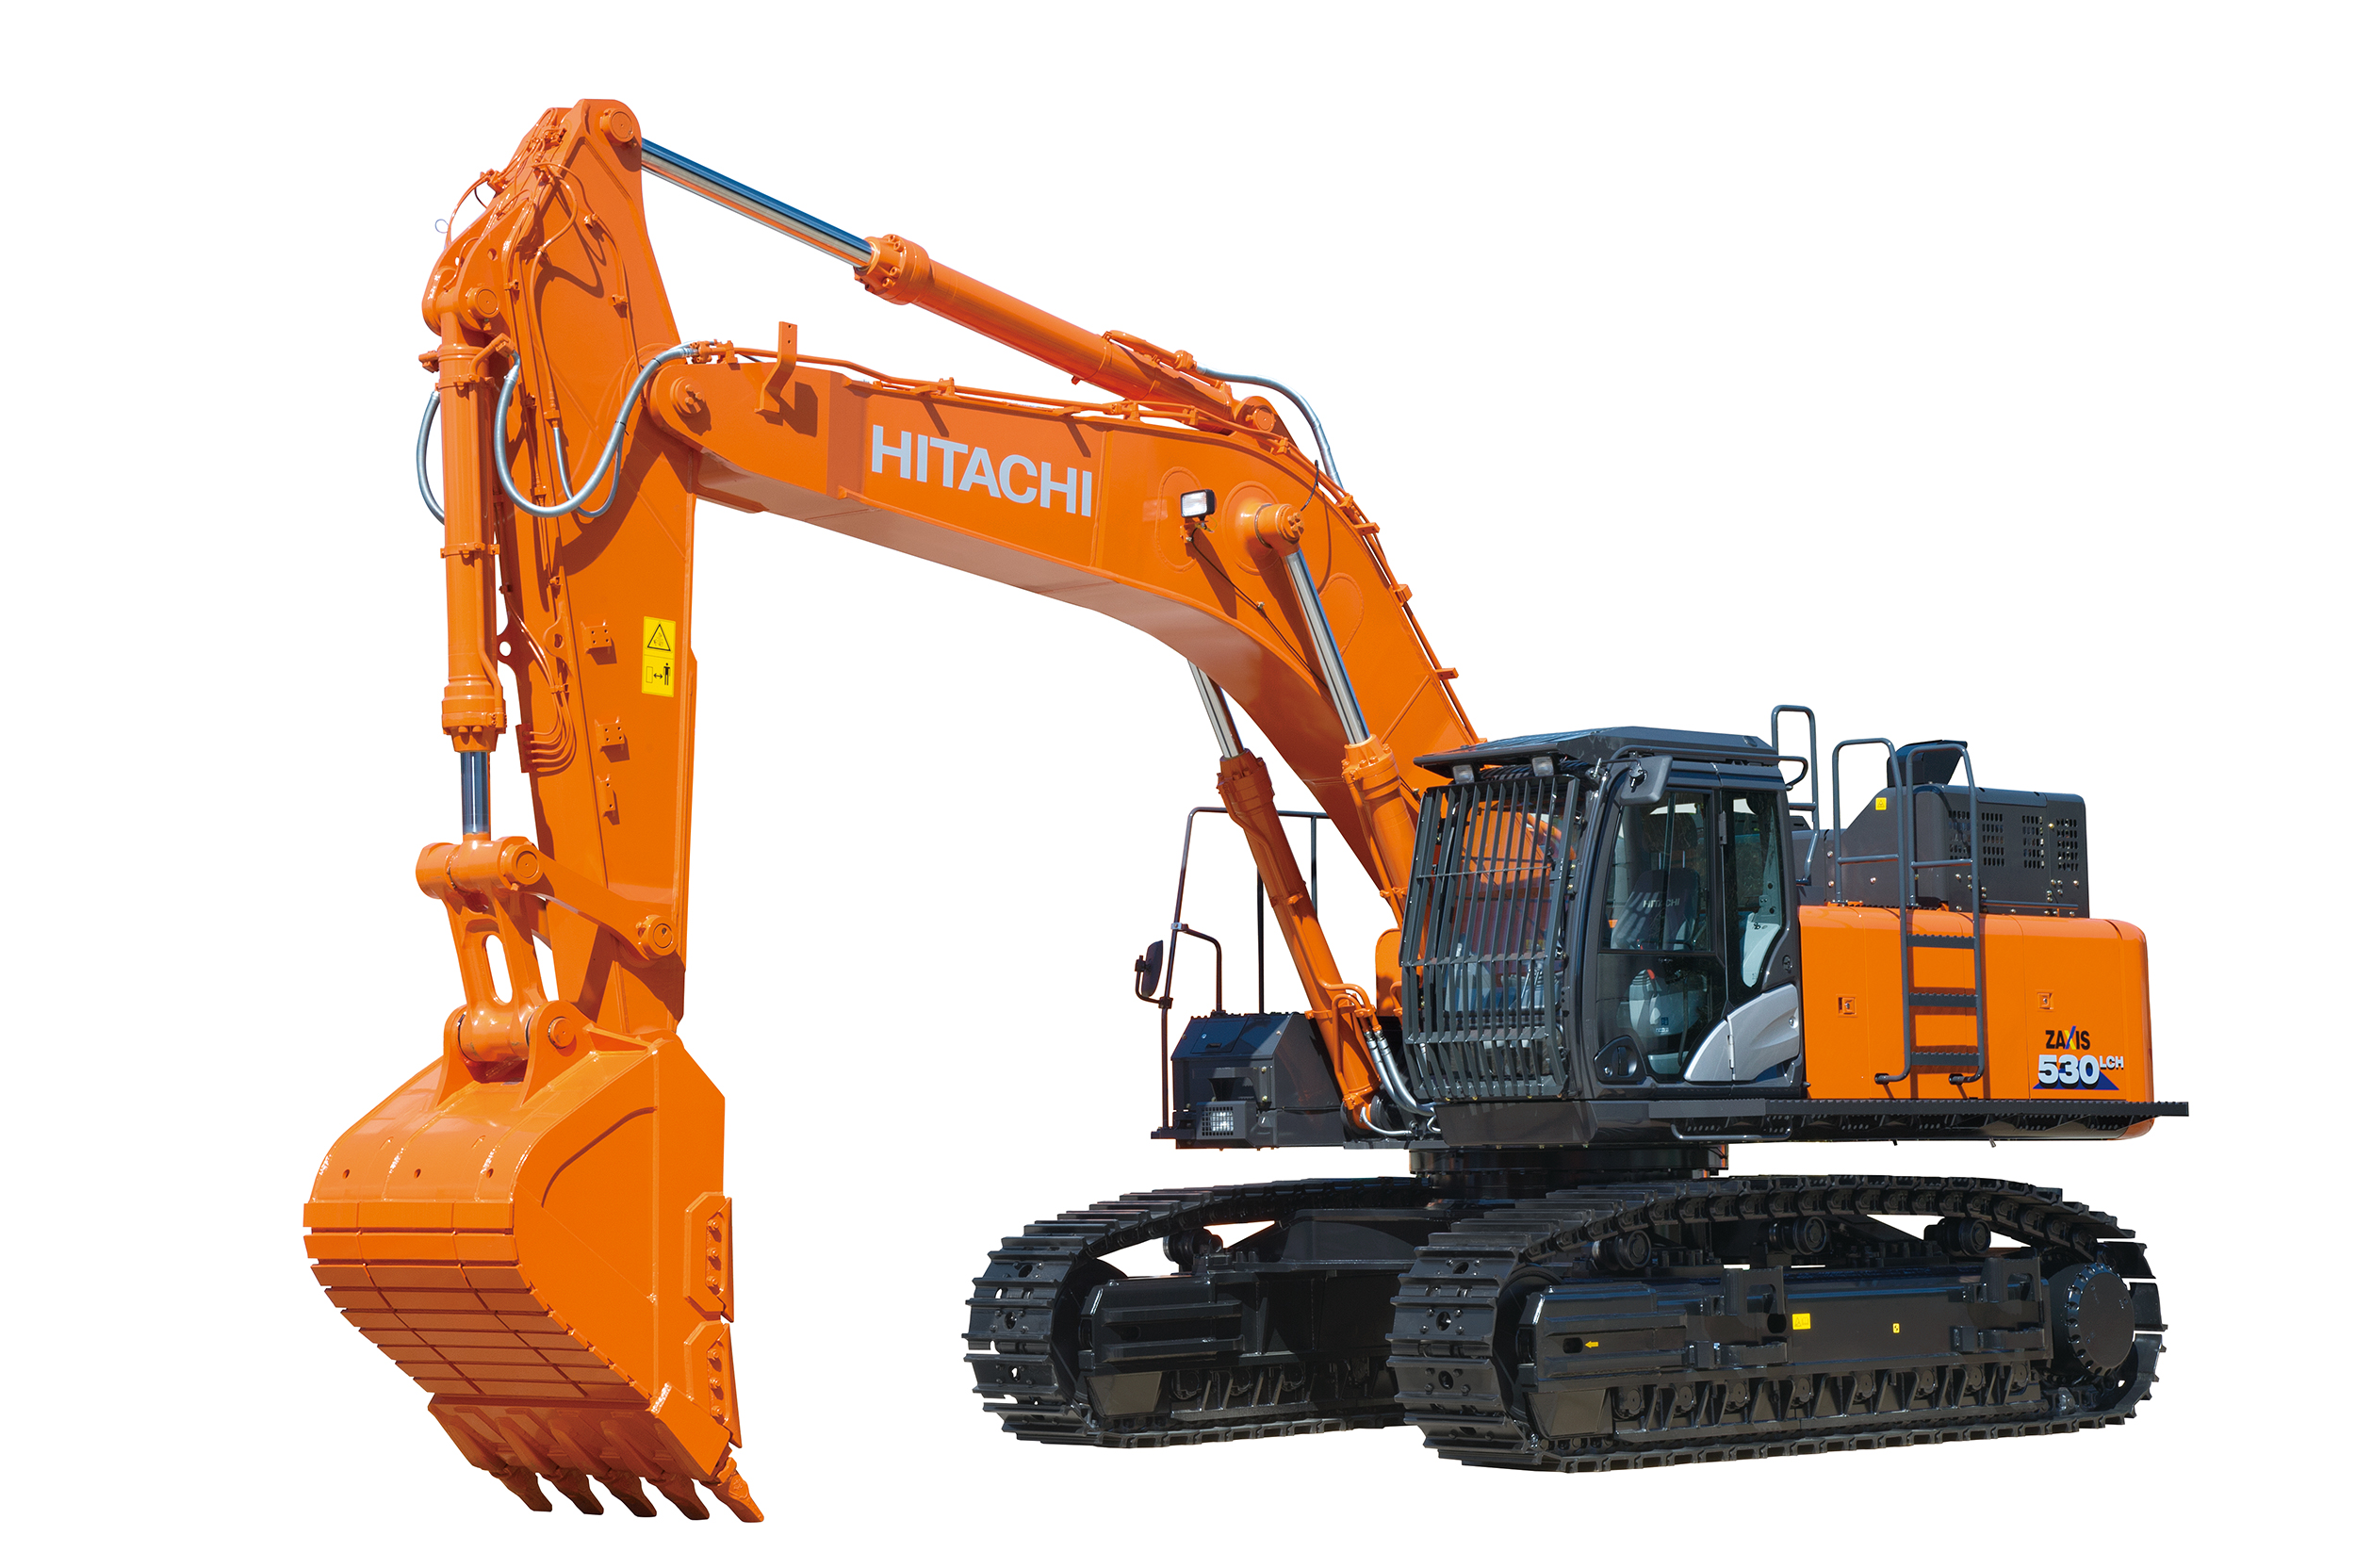 Office Paint Zx530lch 6 Hitachi Construction Machinery